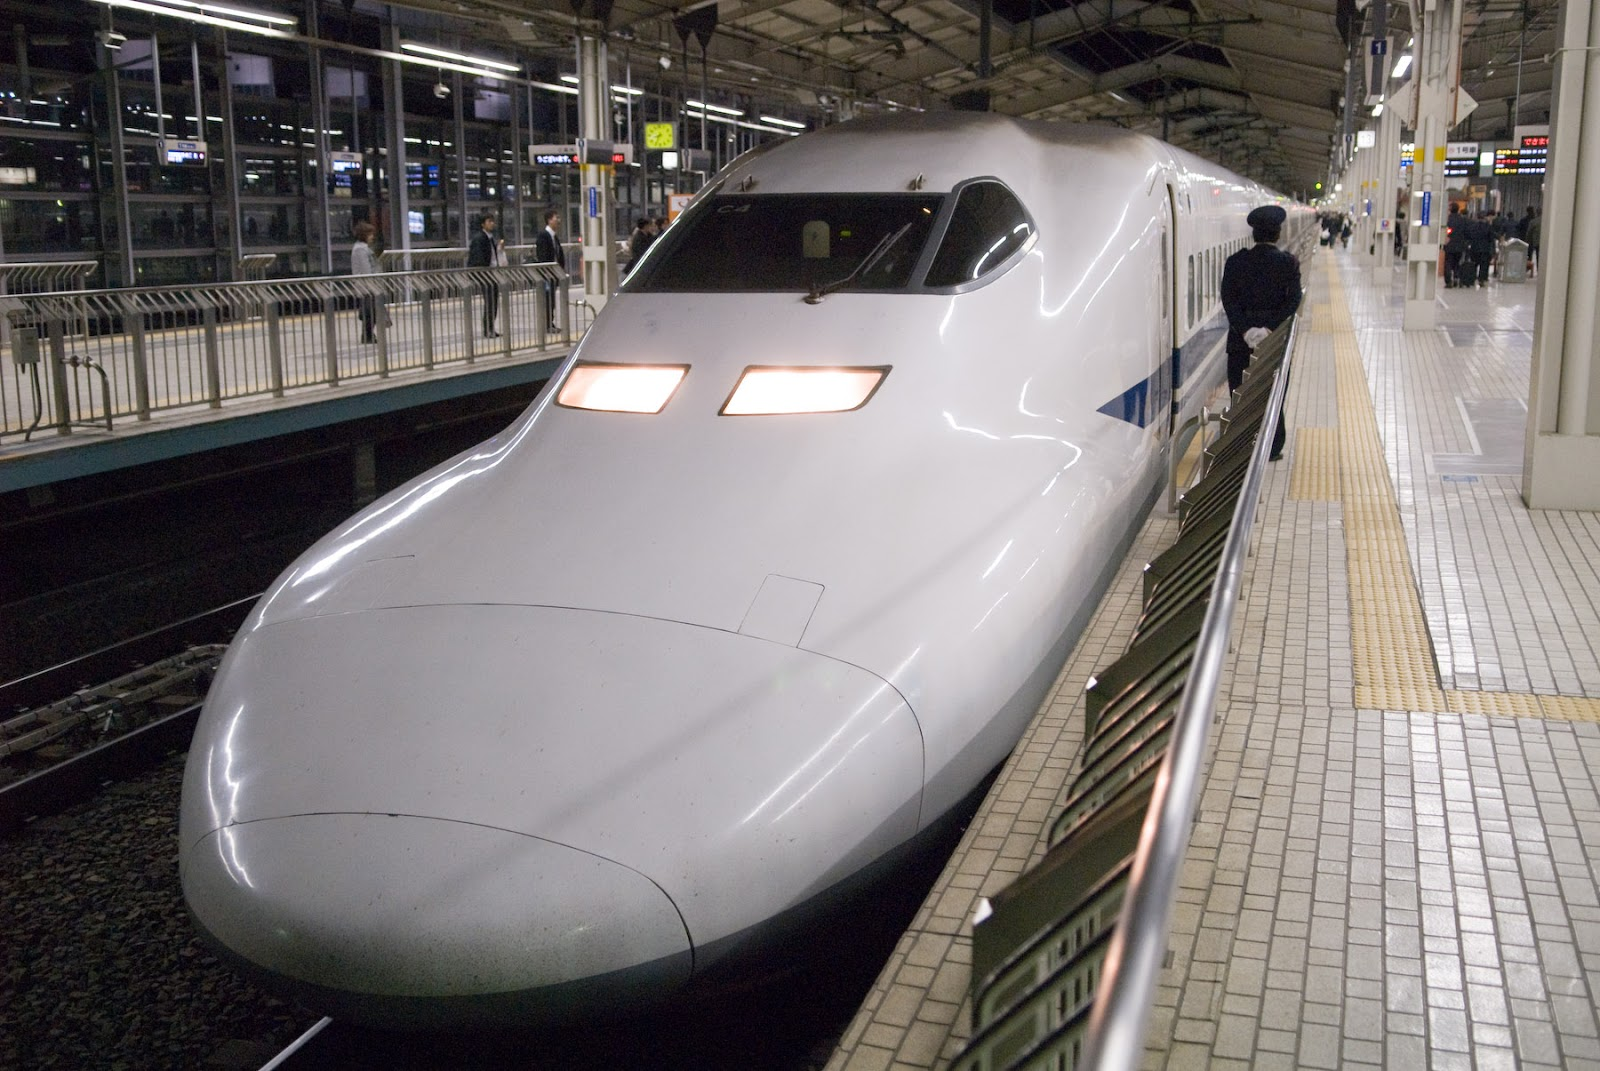 N700 Bullet Train HD Wallpapers   HDWallpapers360 HD 1600x1071